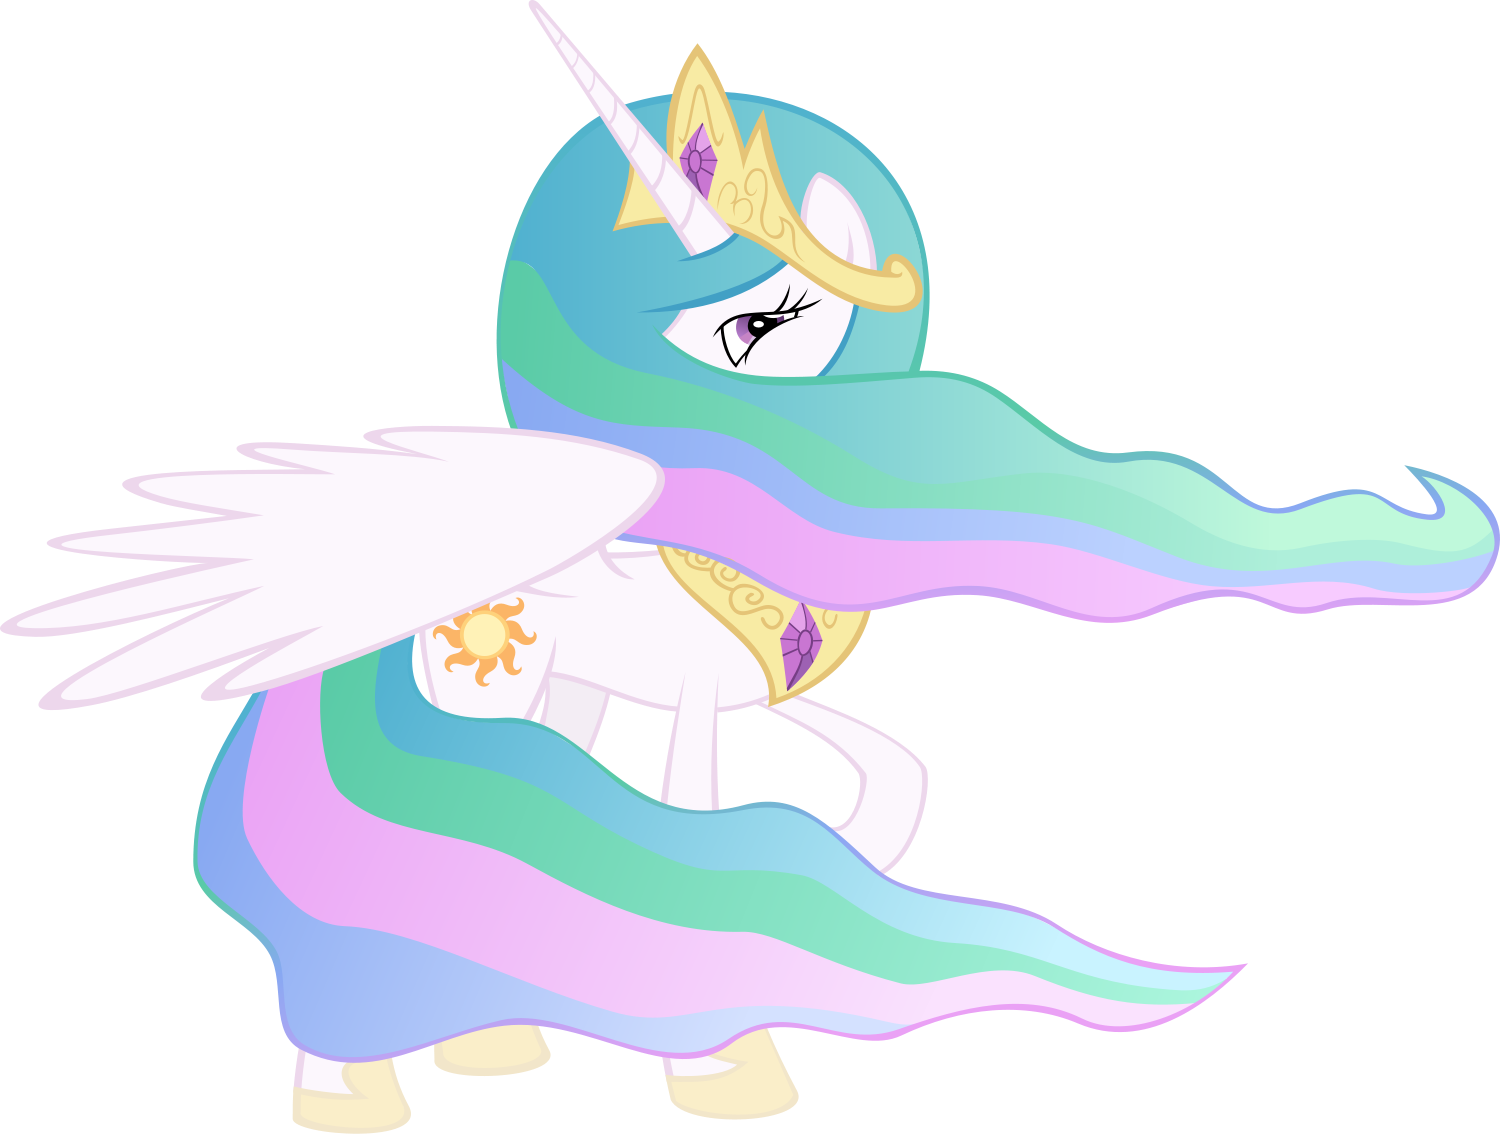 princess_celestia_by_kalleflaxx-d4996q7.png (1500×1134)